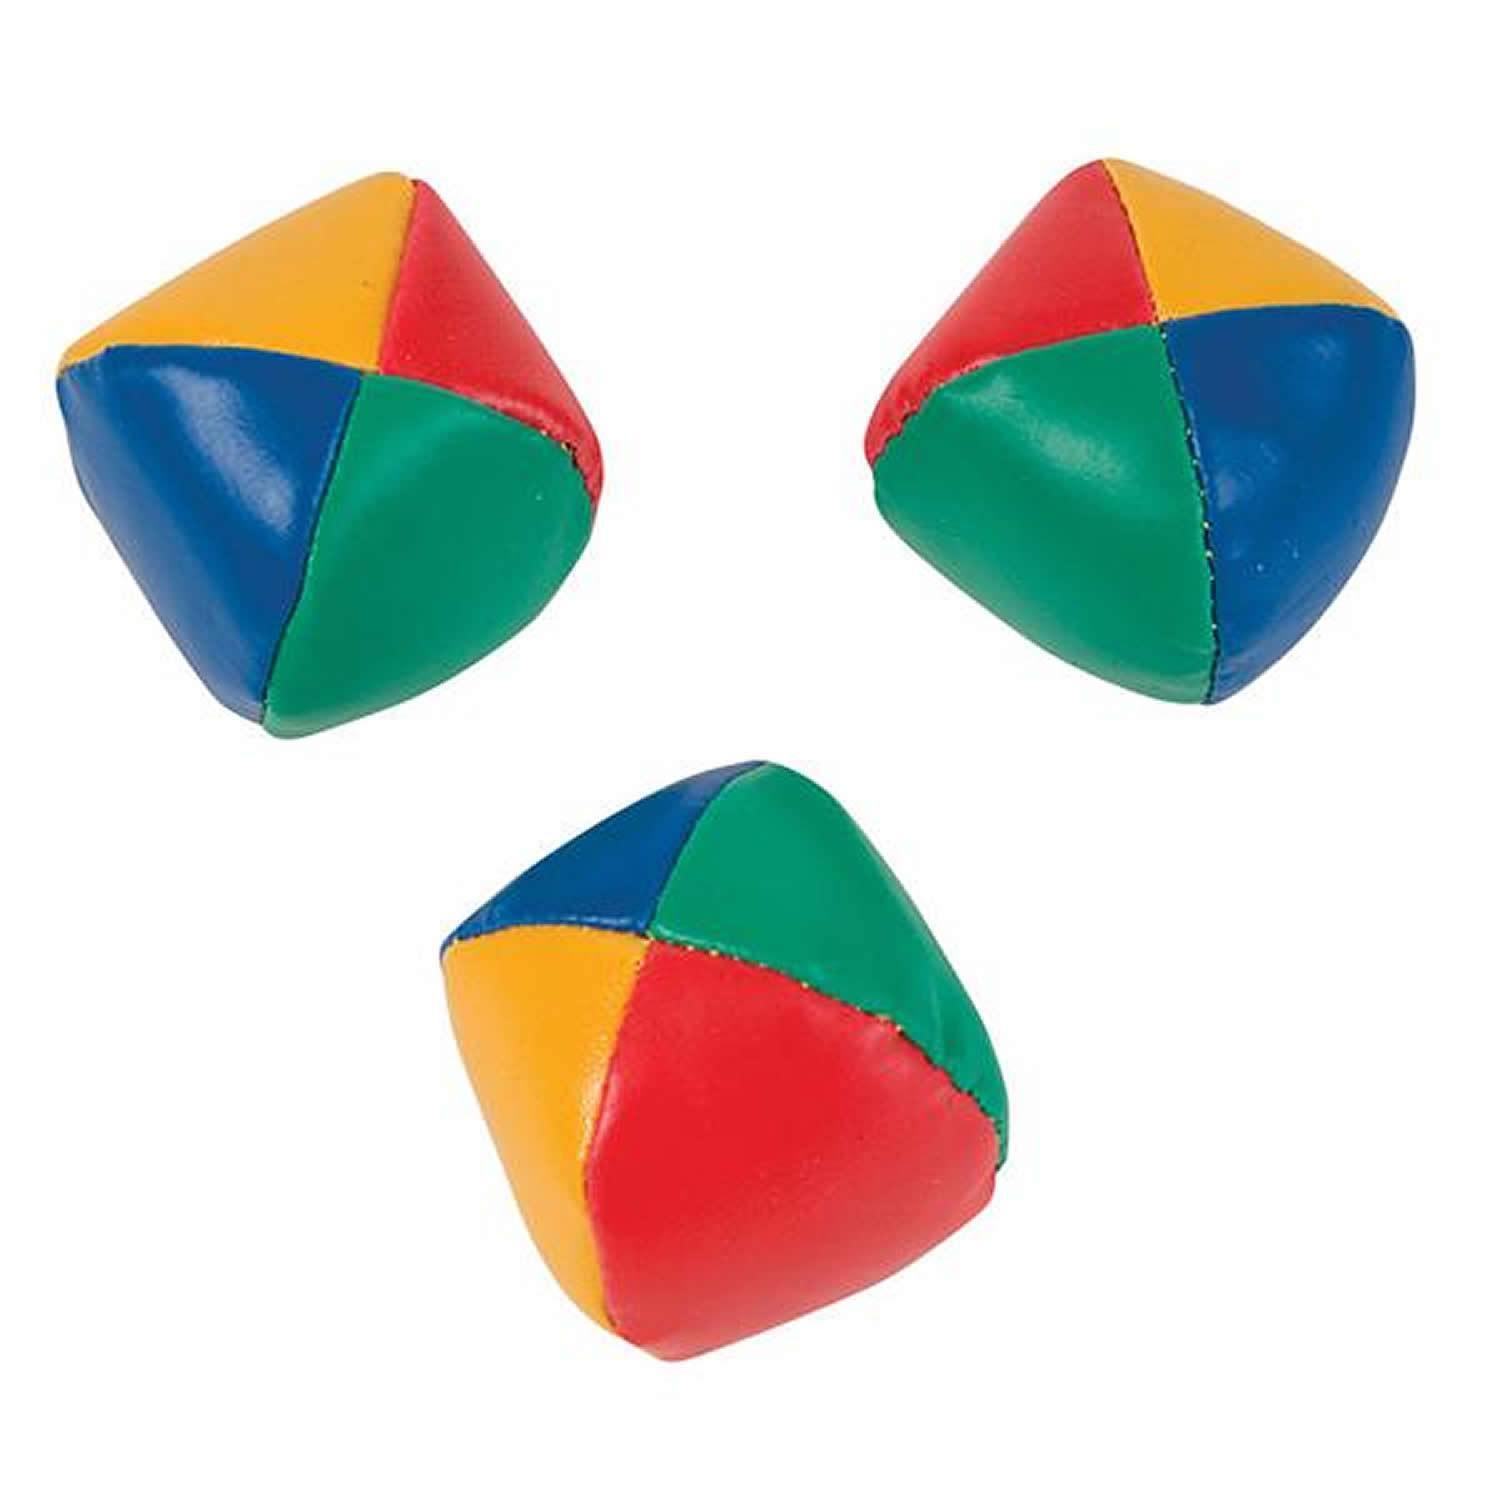 Juggling Balls by Rinco - Shop GagWorks.com